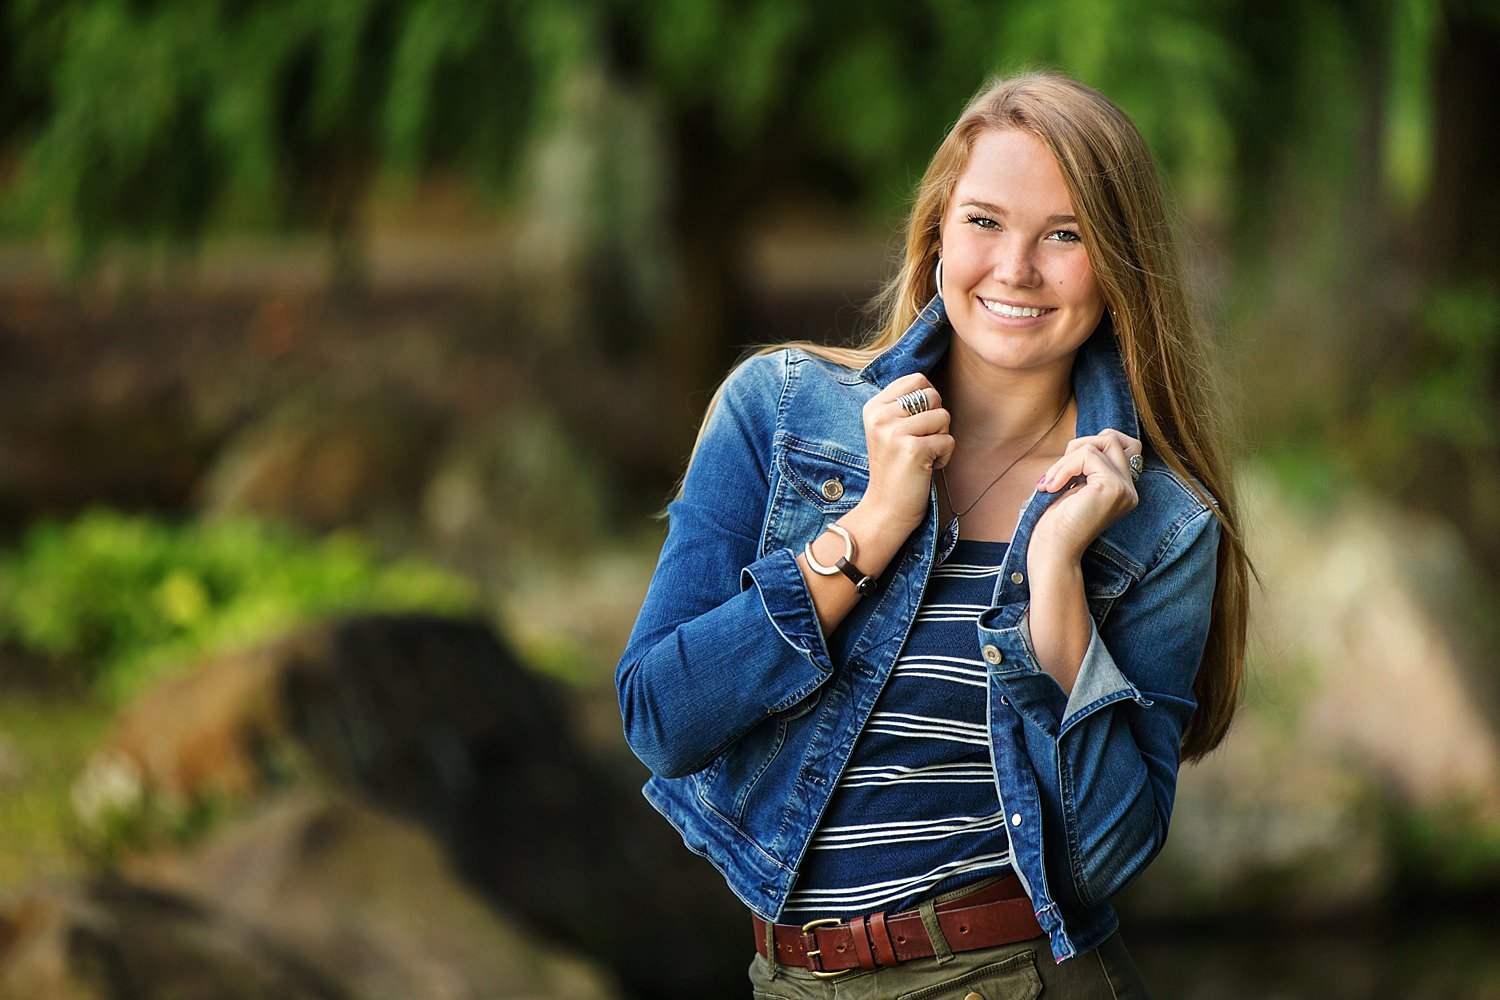 outdoor High school senior portraits at dawes arboretum in heath newark ohio